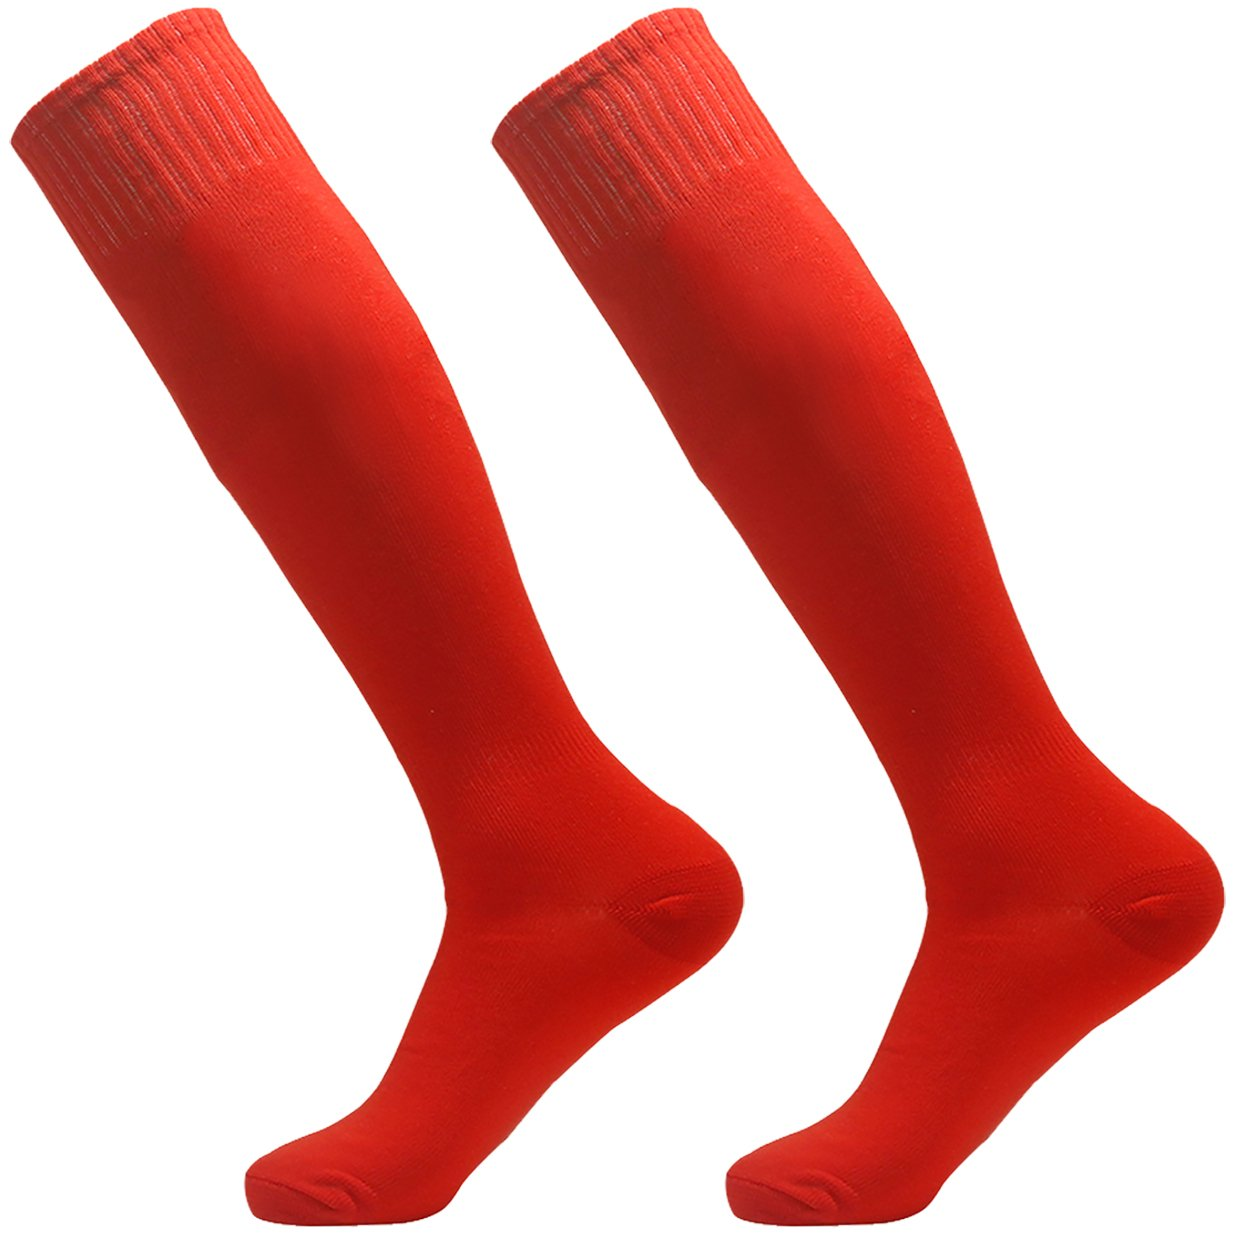 Soccer Socks Red, 3street Unisex Winter Thick Cushioned Solid Over Knee Comfort Football Rugby Softball Compression Socks Dance Group School Sport Team Red 2-Pairs